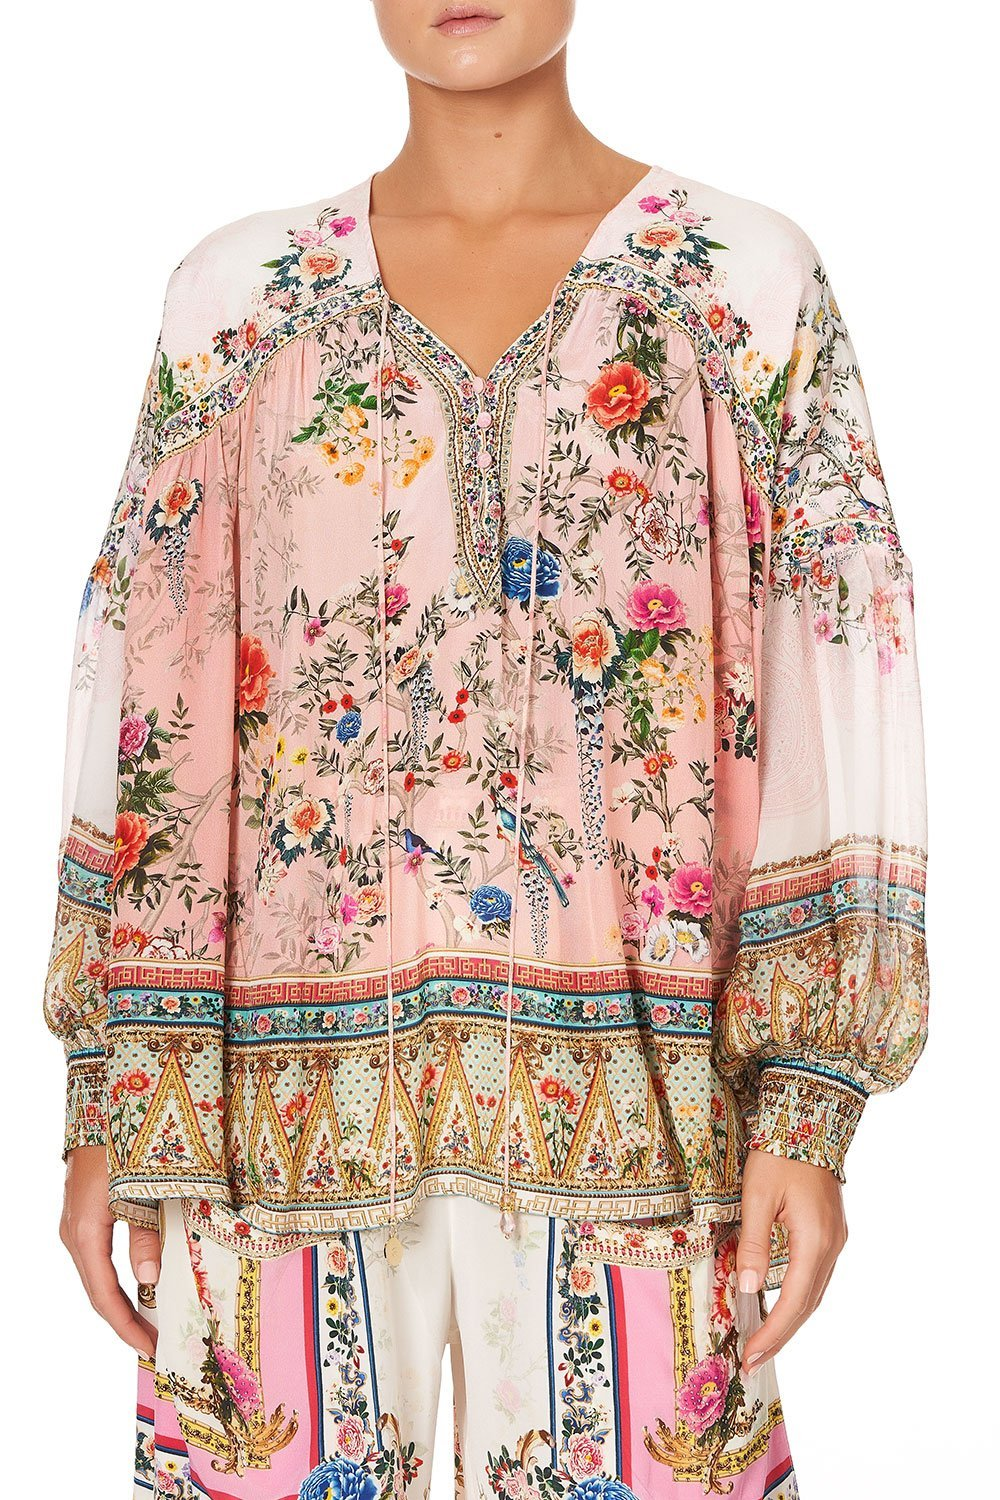 camilla_blouse_with_neck_tie_party_in_the_playhouse_4_1024x1024@2x